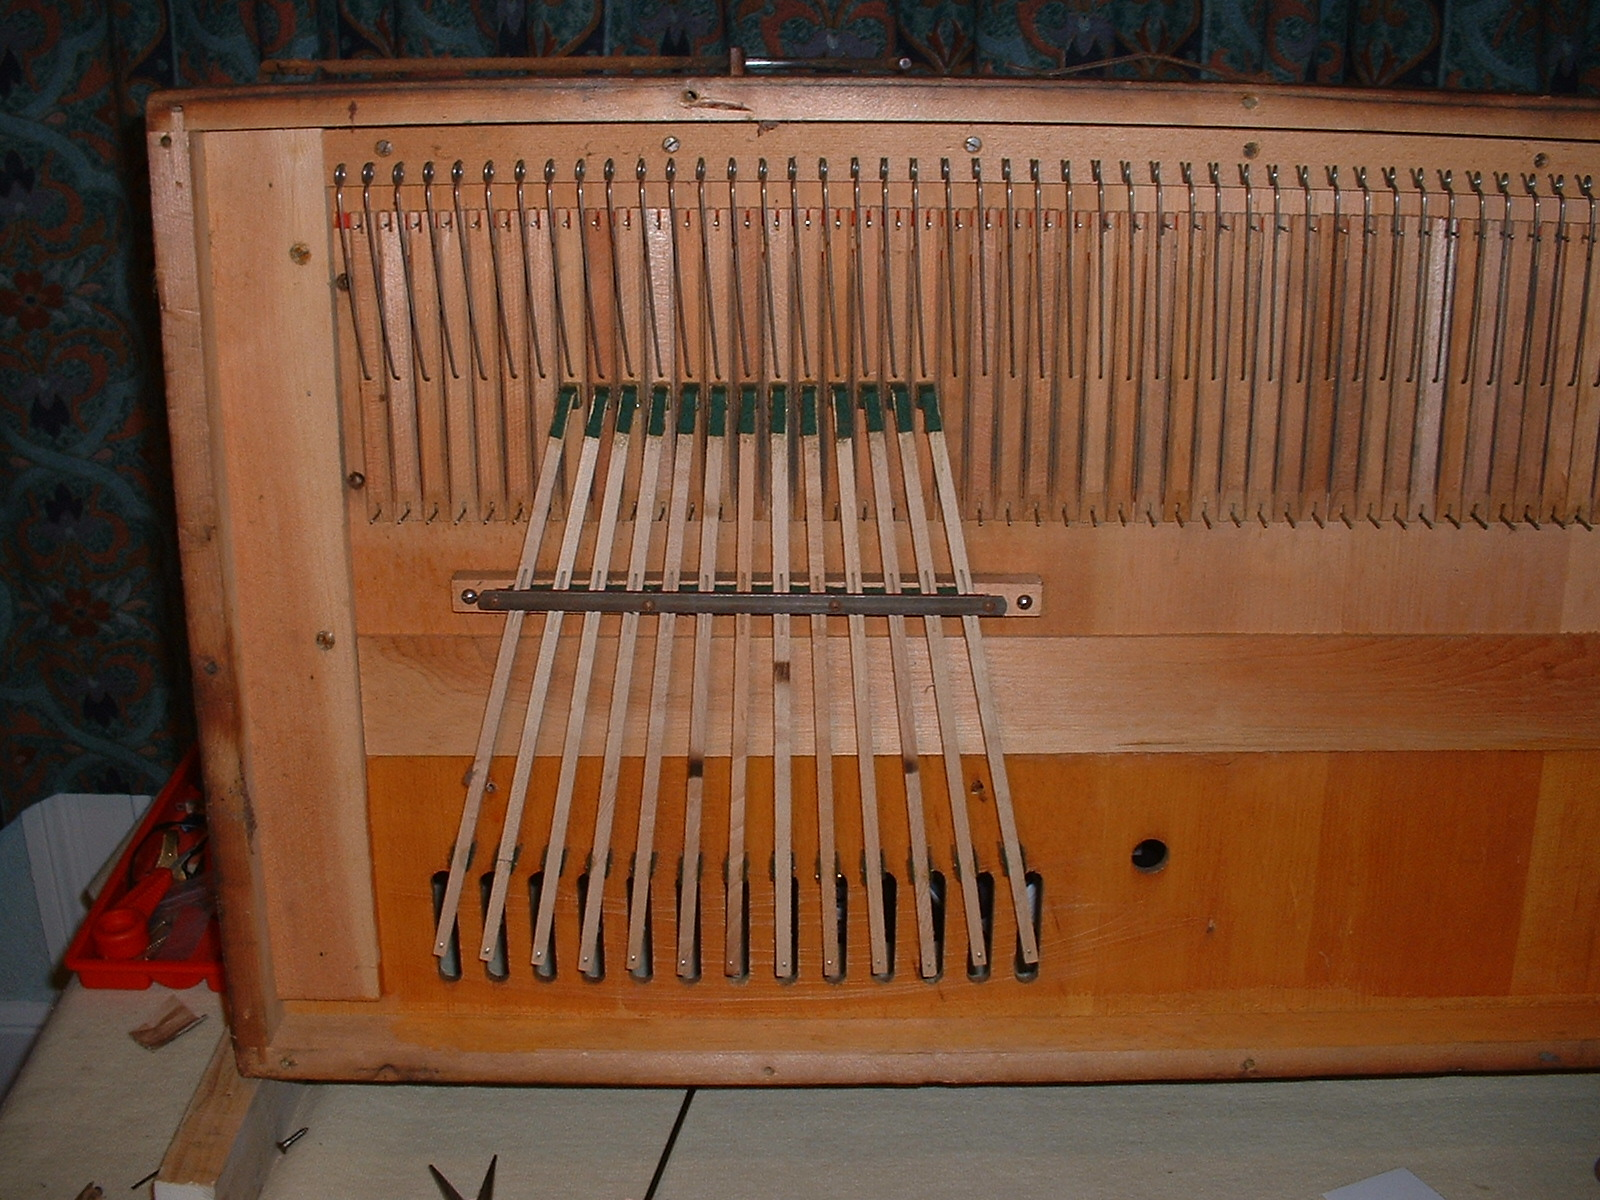 Pallet linkages to the sub-bass